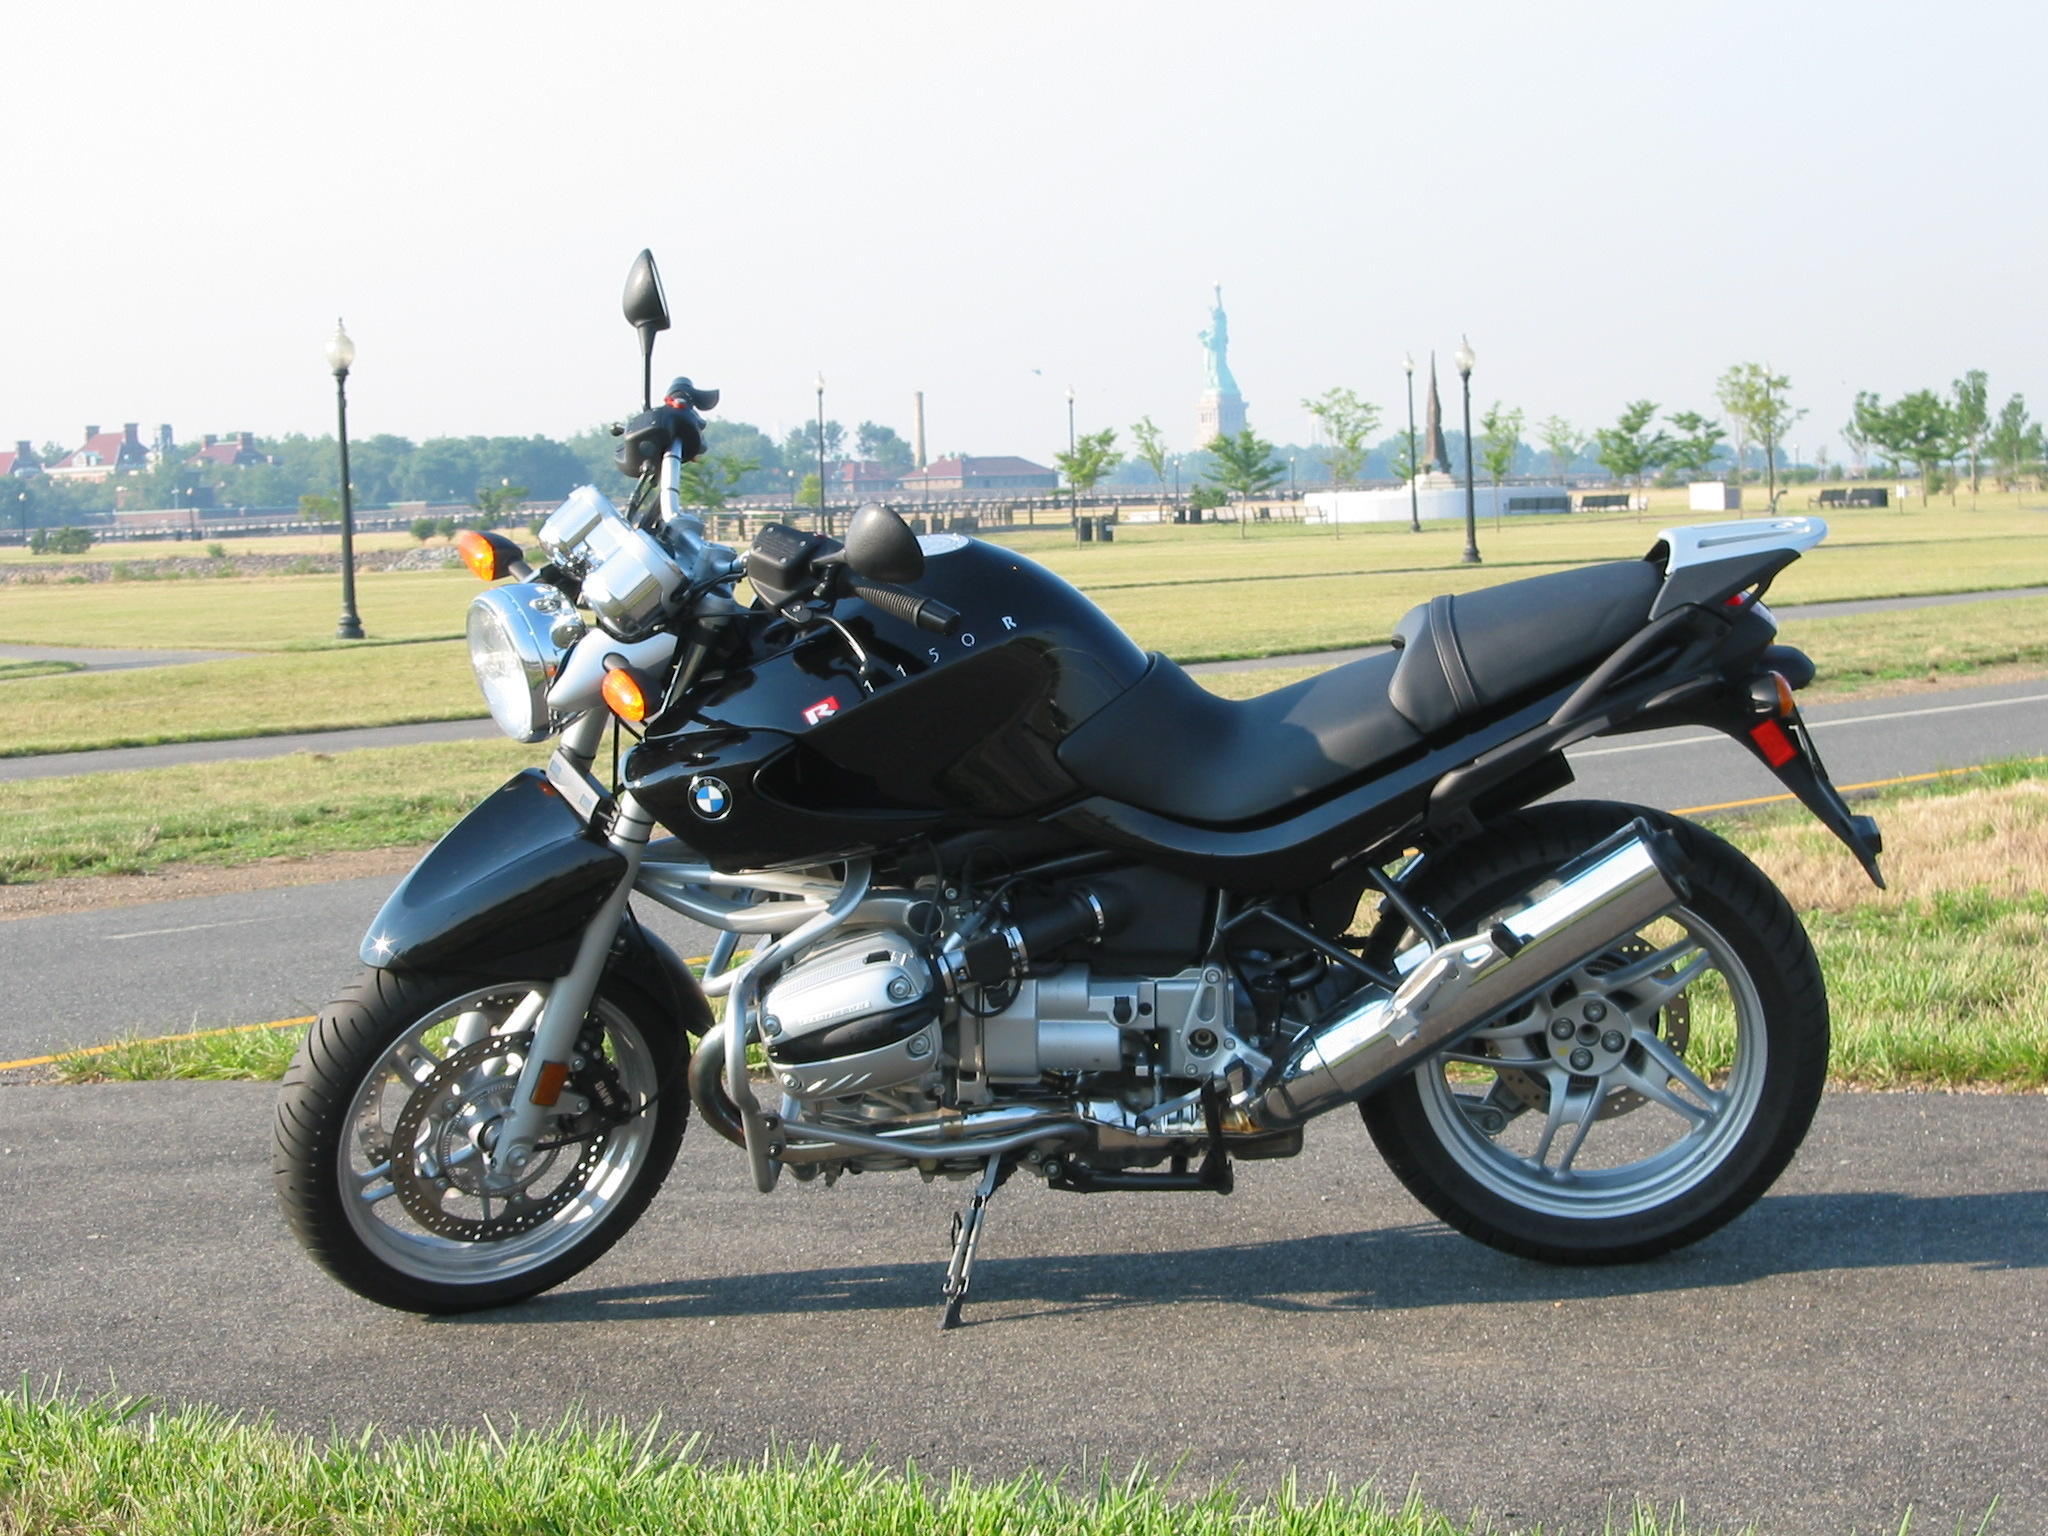 BMW R1150RS 2002 images #7018